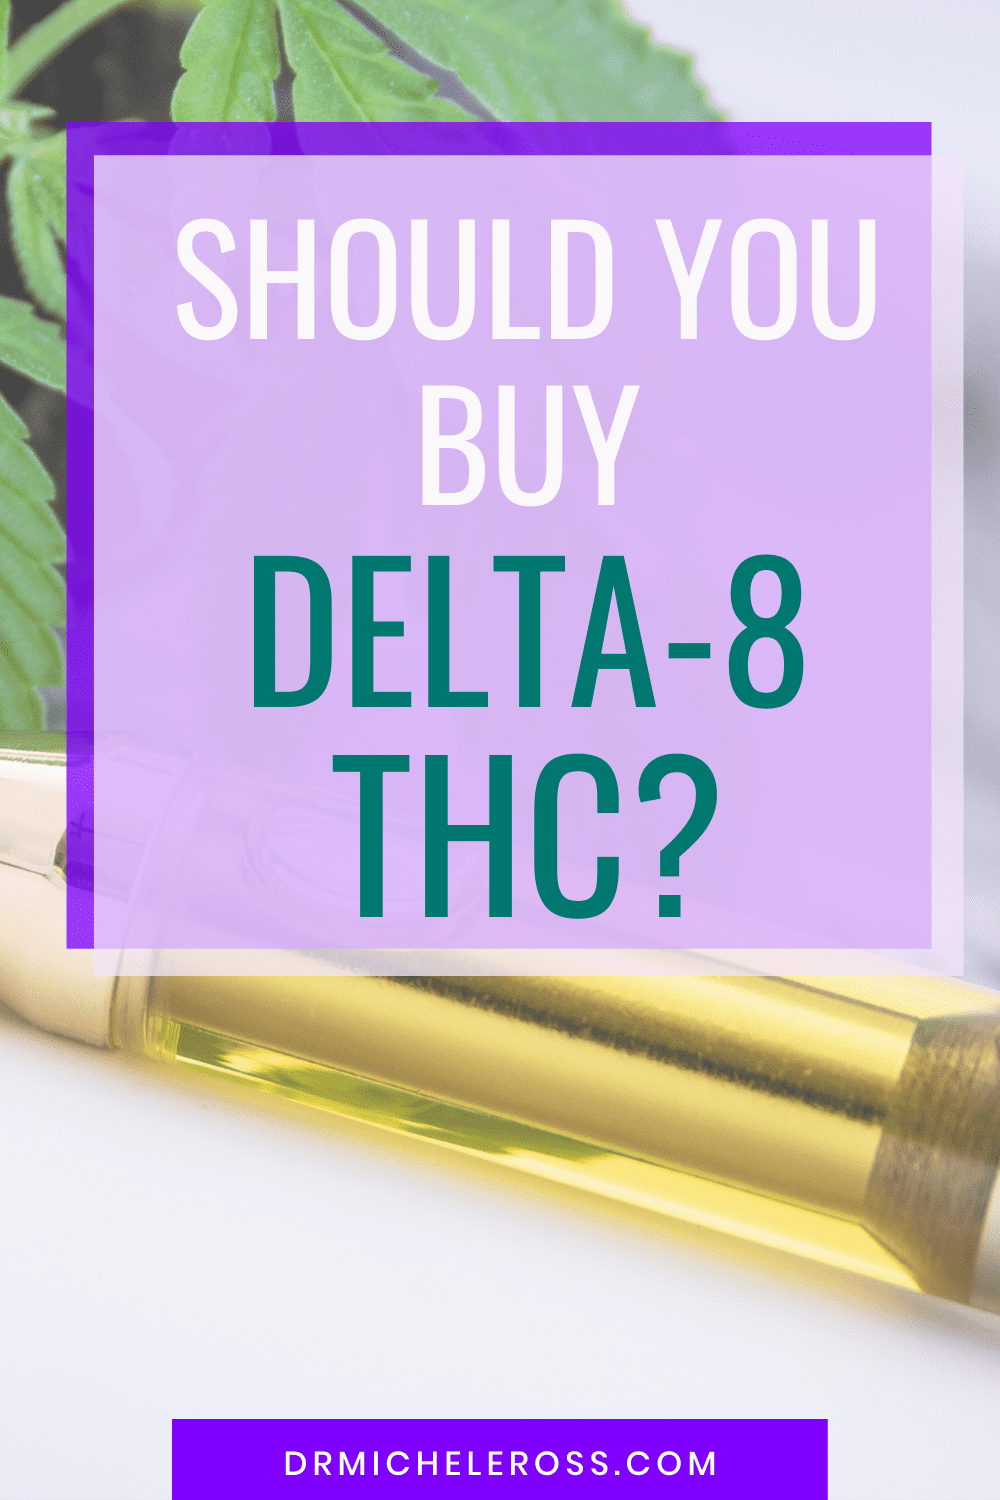 Should You Buy Delta-8 THC Products?